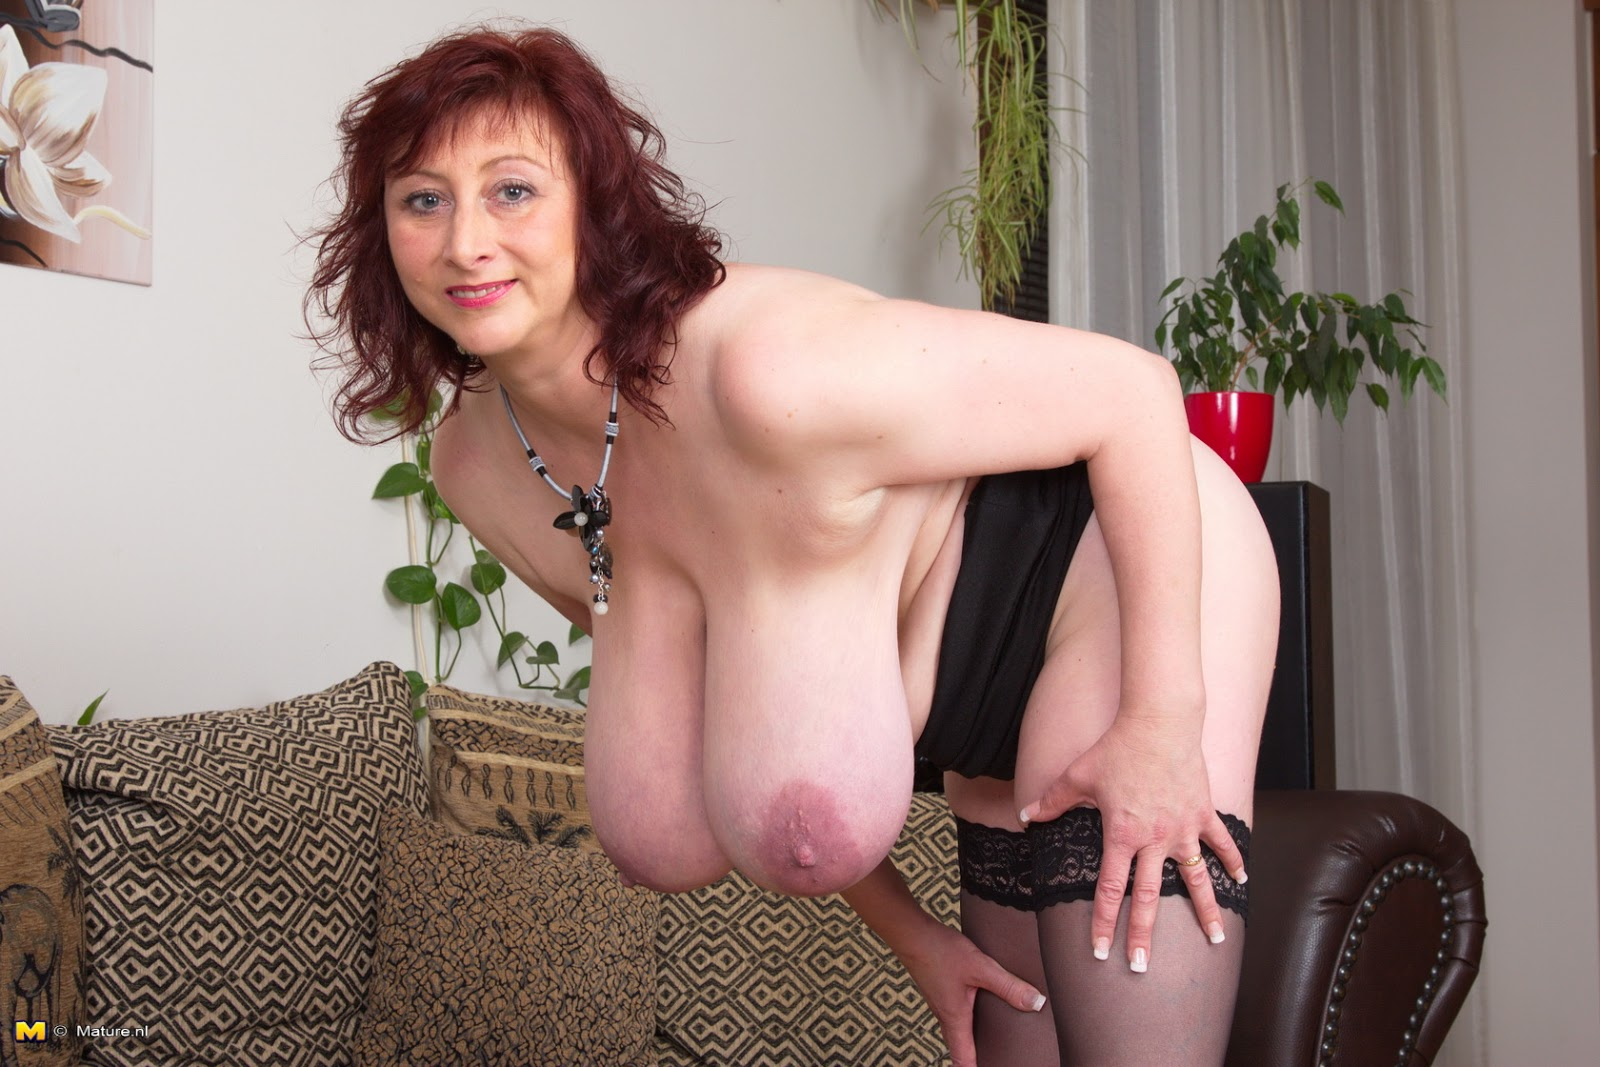 fun Hot Mature Slut Judy Altman 1 years old, attractive